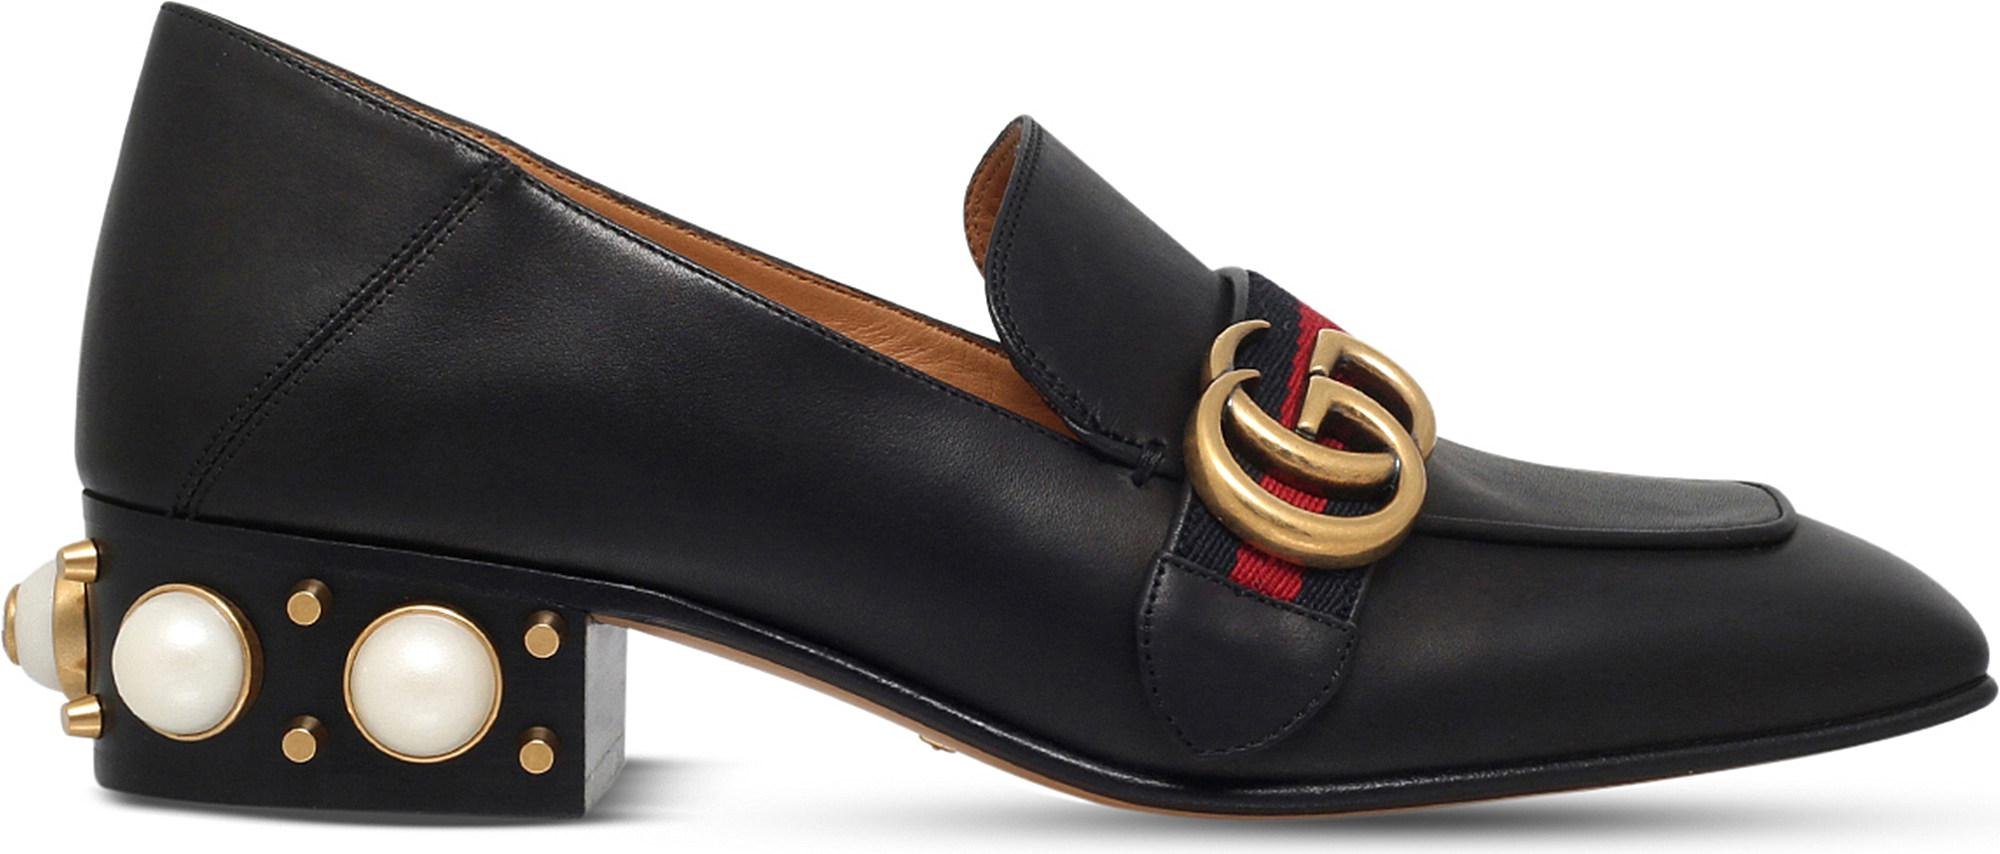 538884bbb29 Gucci Embellished-Heel Leather Loafers in Black - Save 10% - Lyst